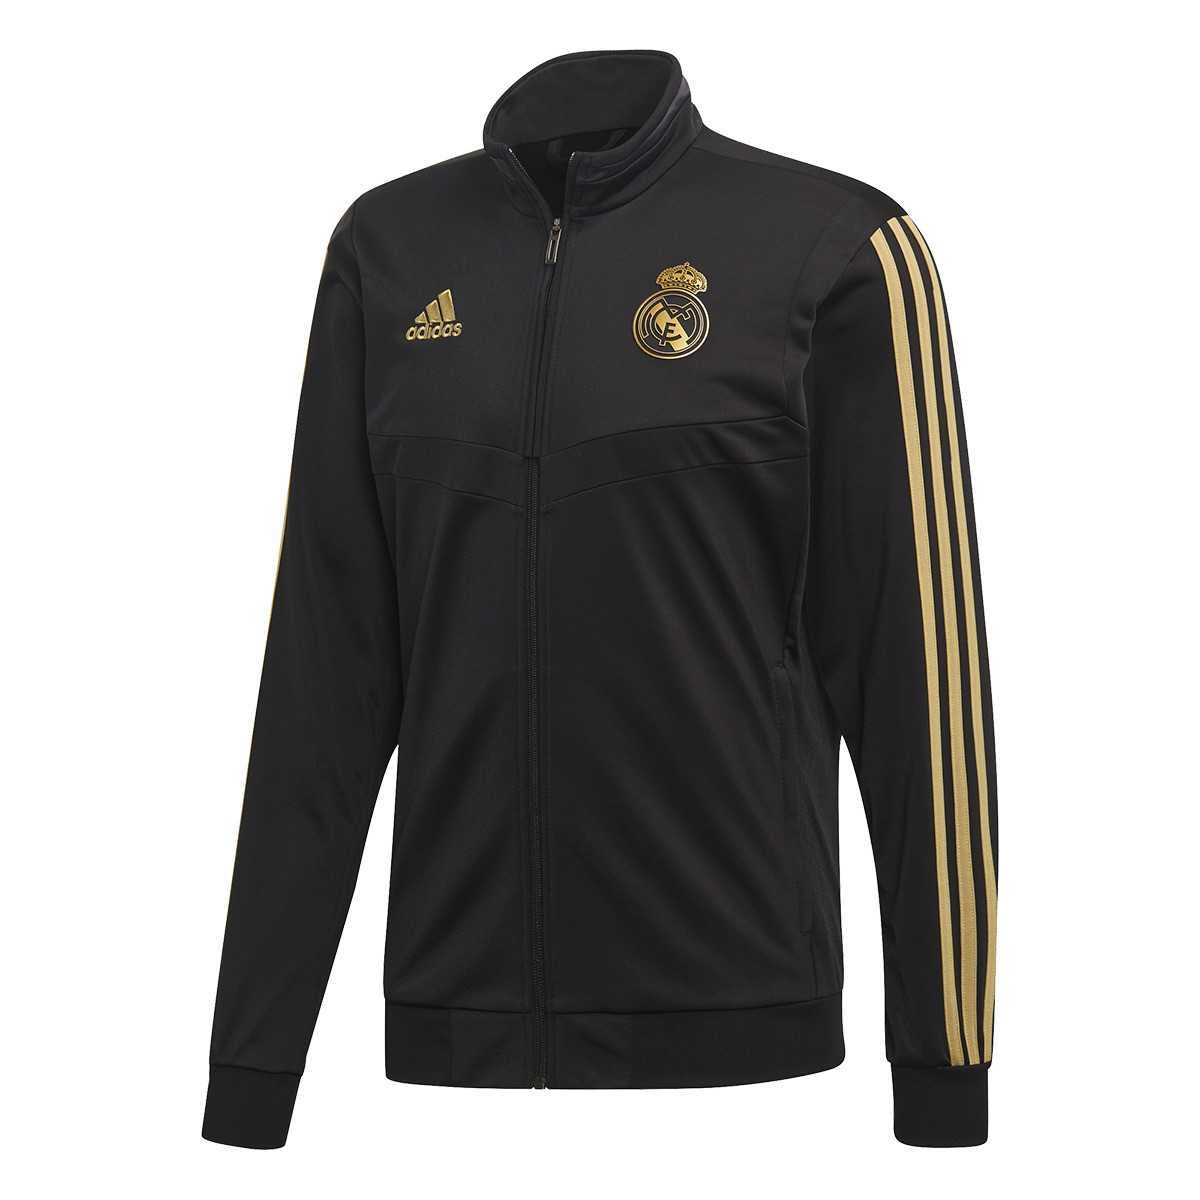 414ab00f0 Tracksuit adidas Real Madrid PES 2019-2020 Black-Dark football gold -  Football store Fútbol Emotion